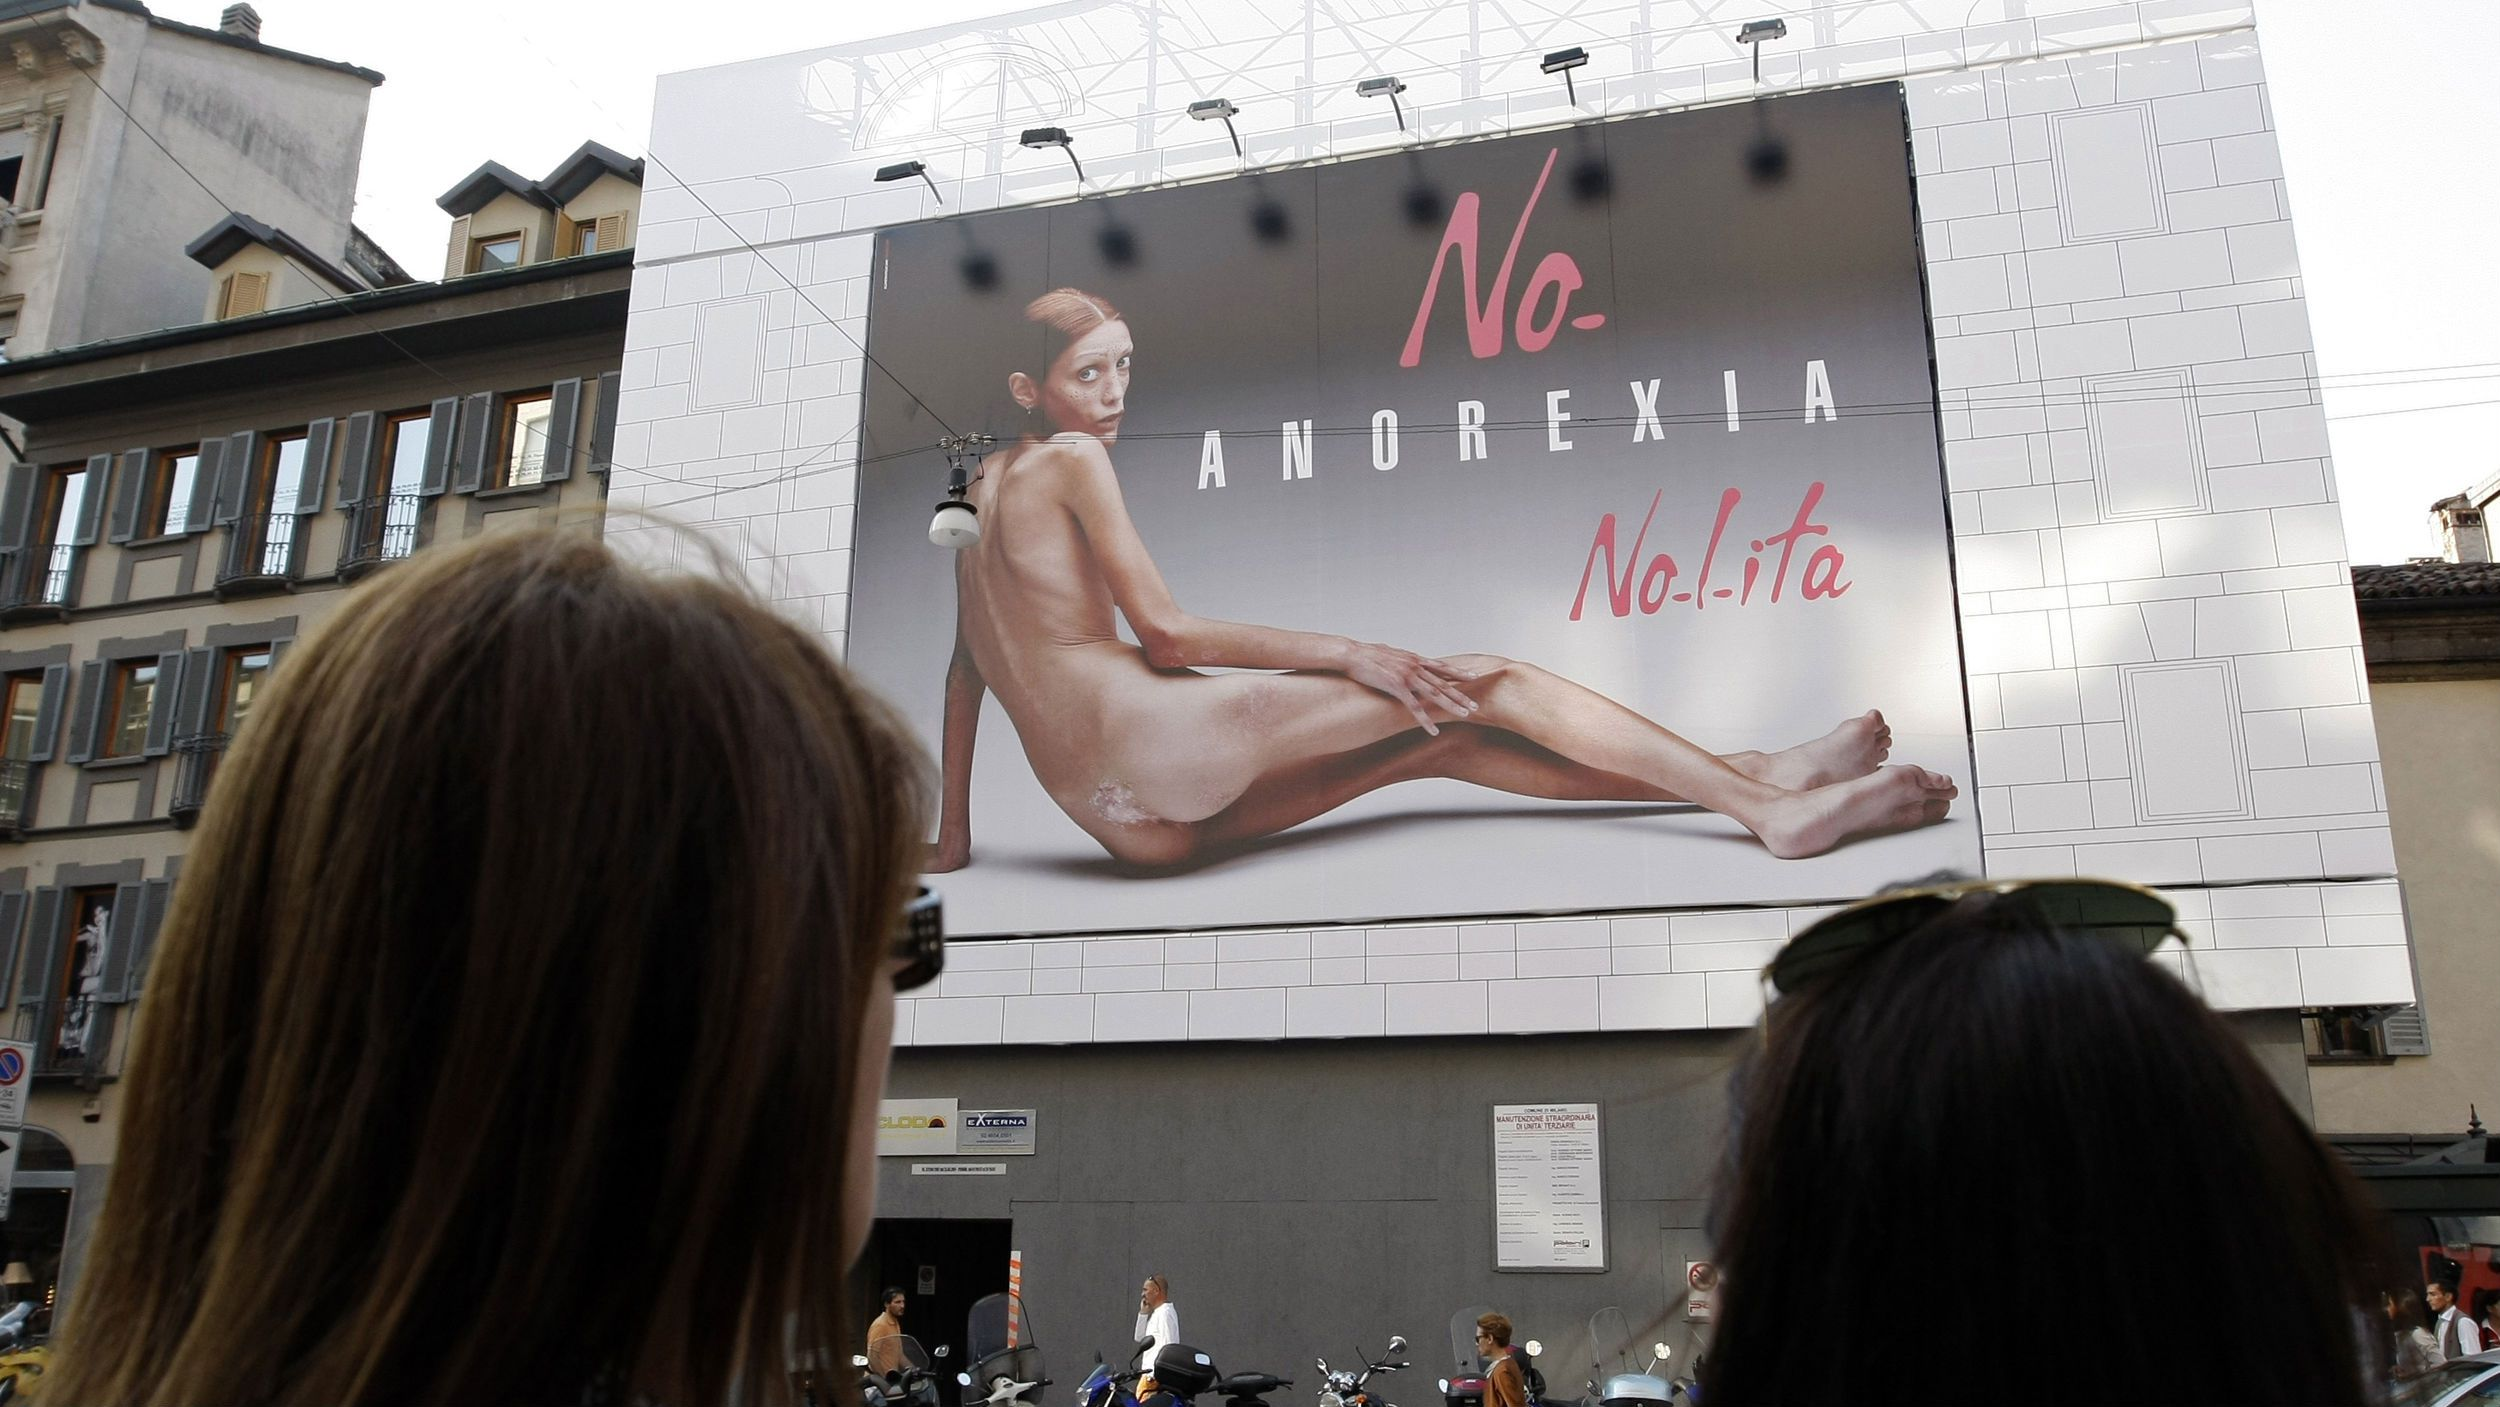 An anti-anorexia campaign